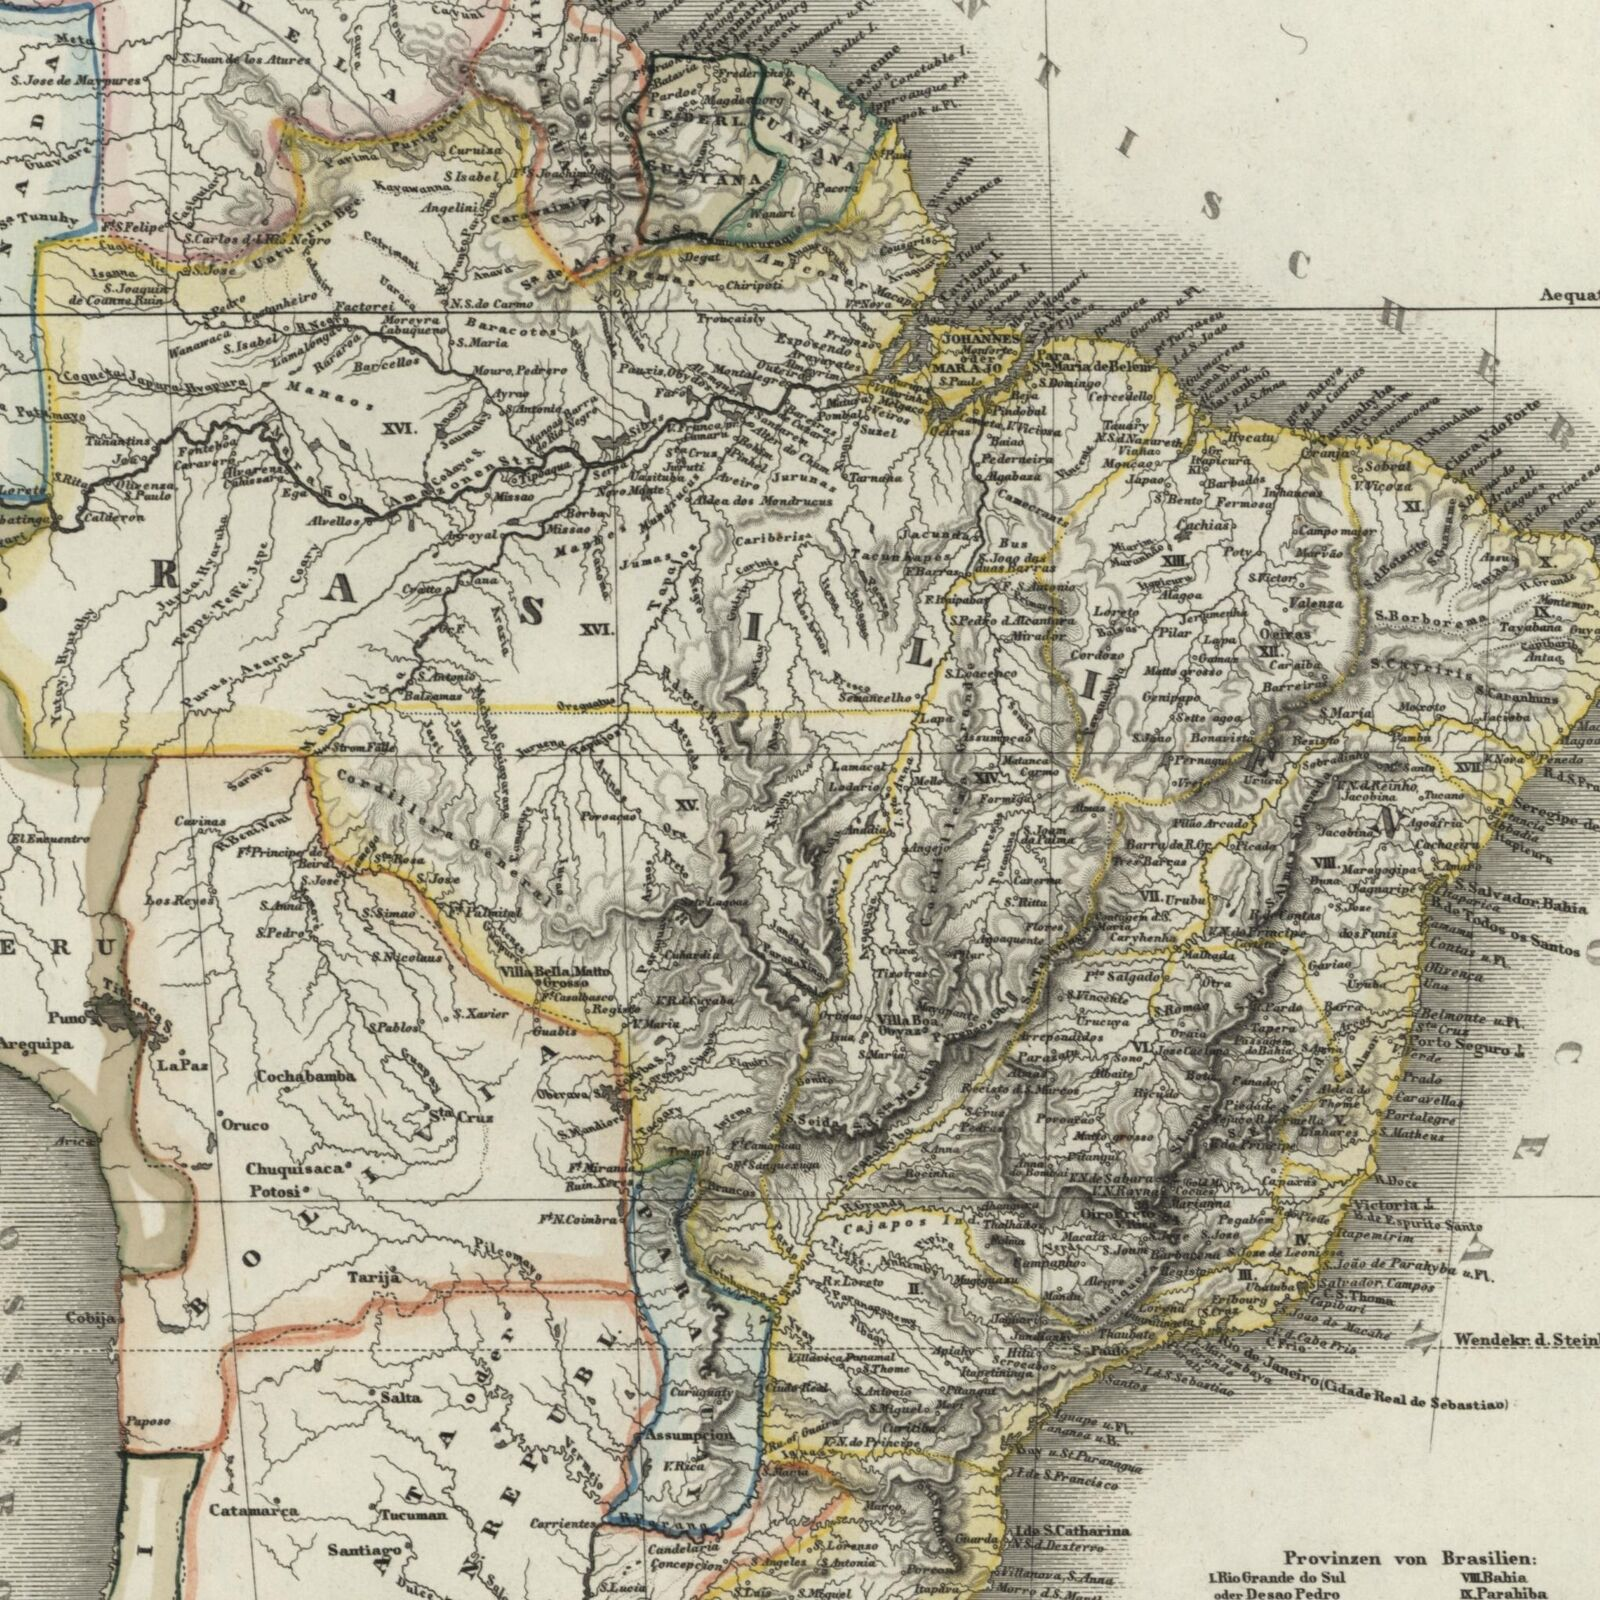 Detailed Map Of America.South America Brazil Uruguay Paraguay 1851 Radefeld Detailed Map Ebay